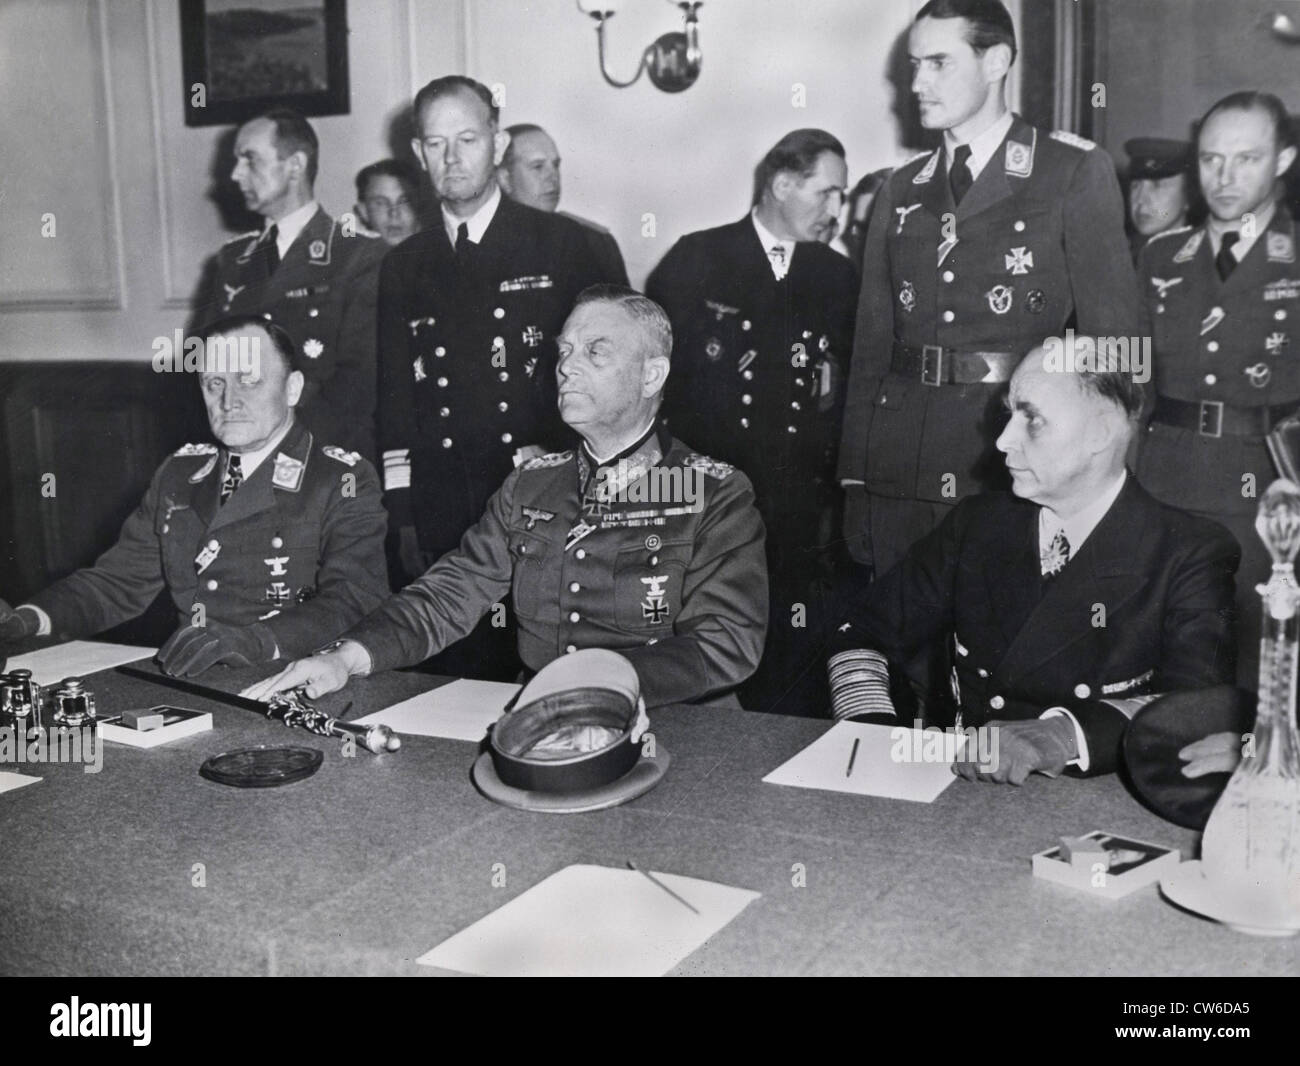 Image result for Keitel, signing the ratified surrender terms for the German Army in Berlin, 8/9 May 1945